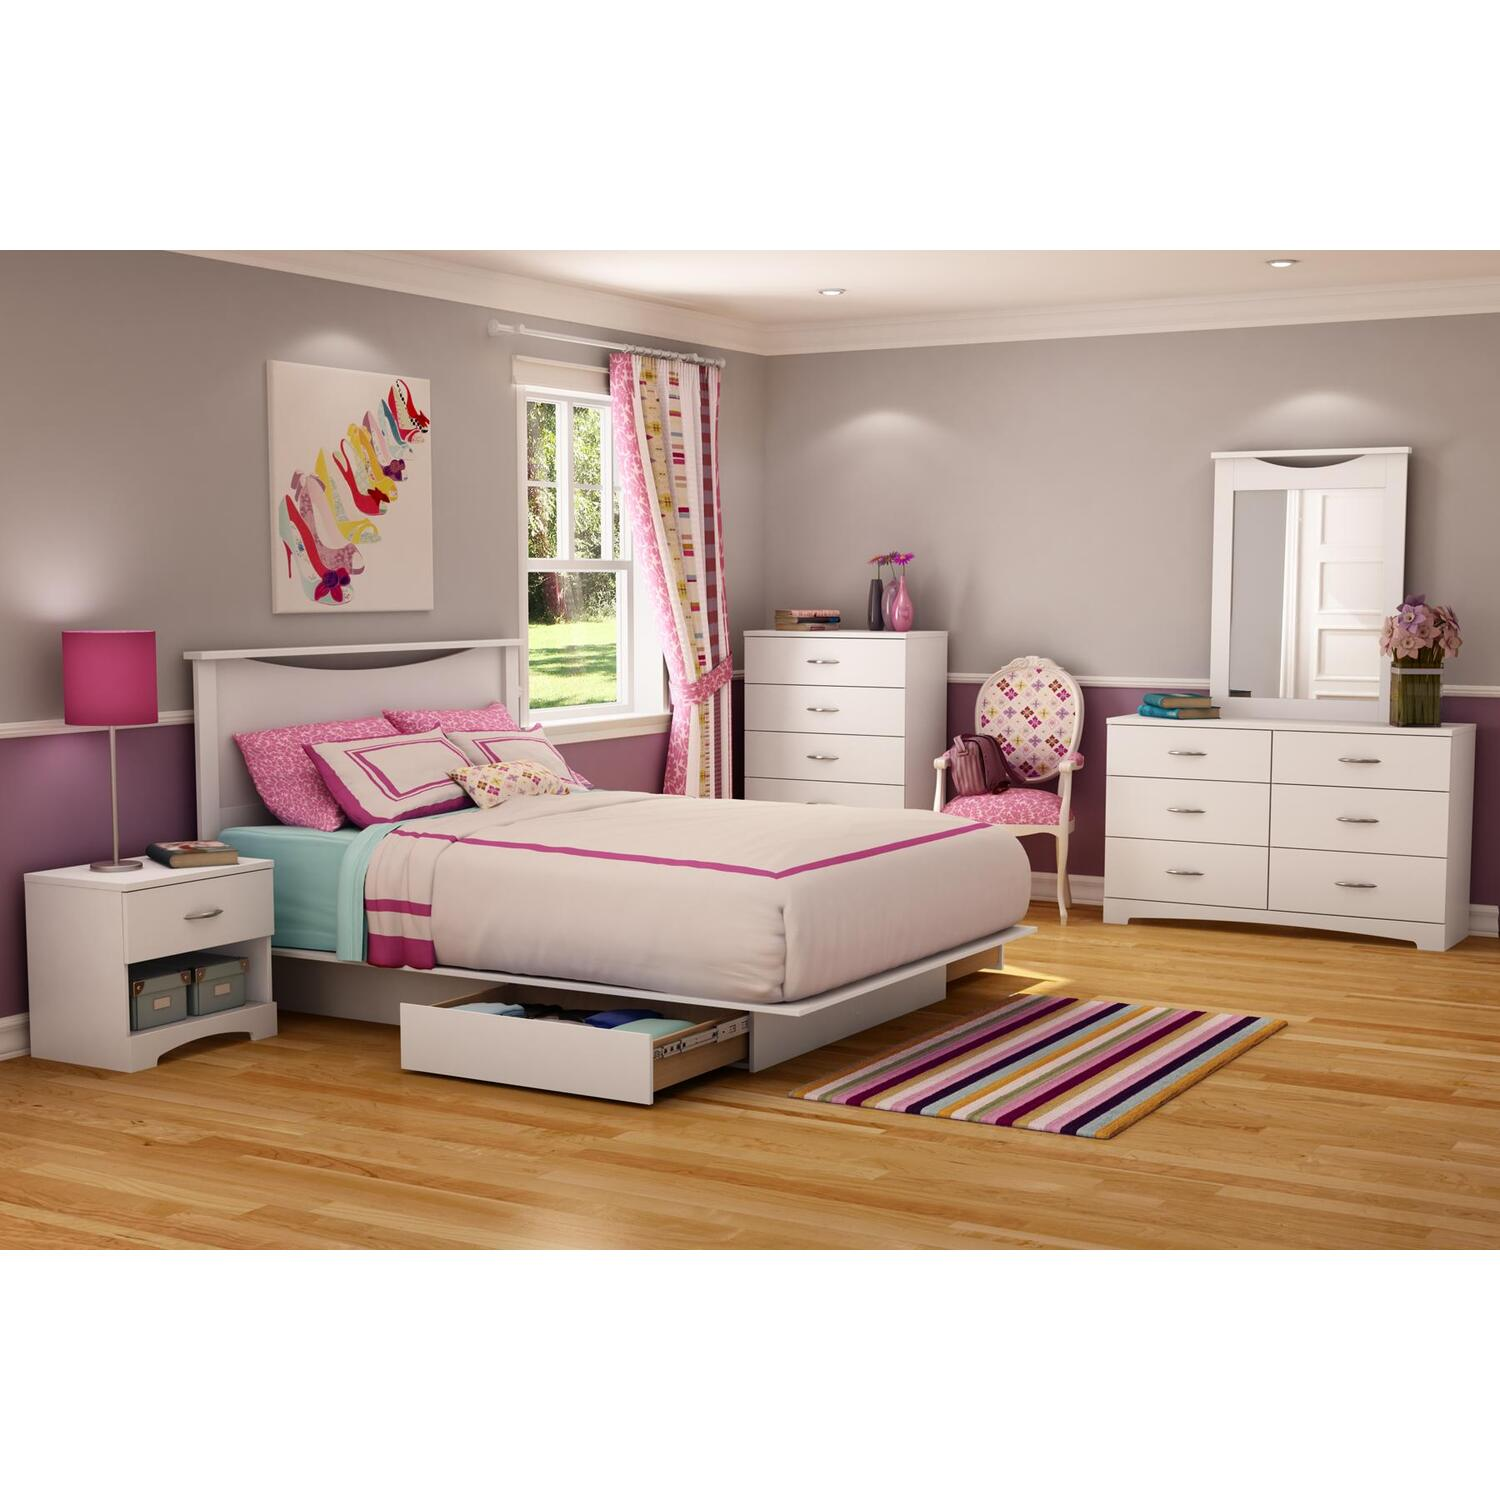 Furniture home goods appliances athletic gear fitness for White bedroom set with storage